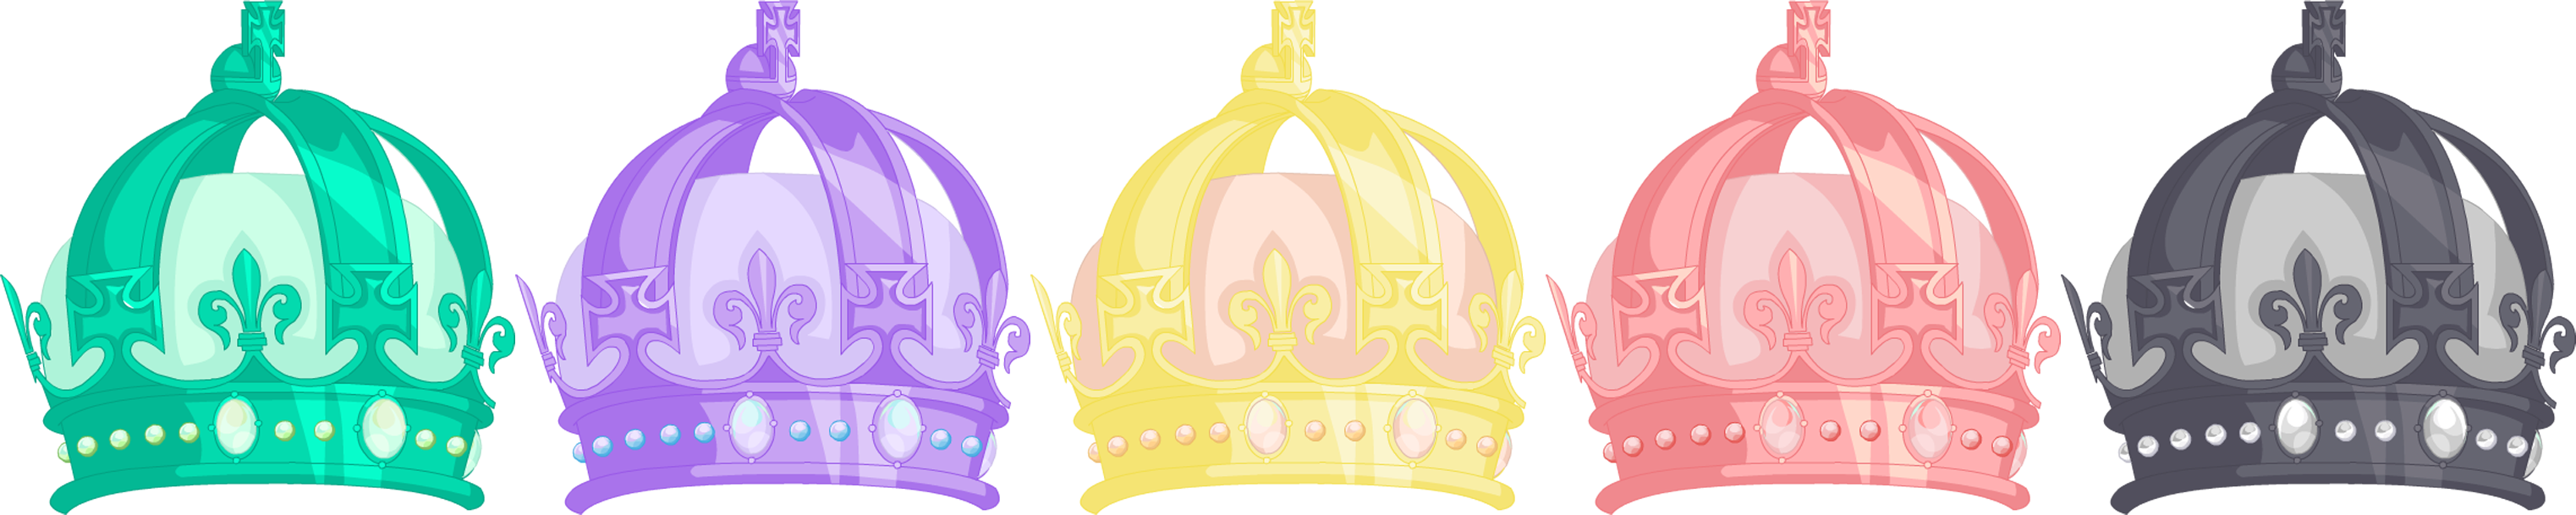 Feb. 2015 True King Of Hearts Crown